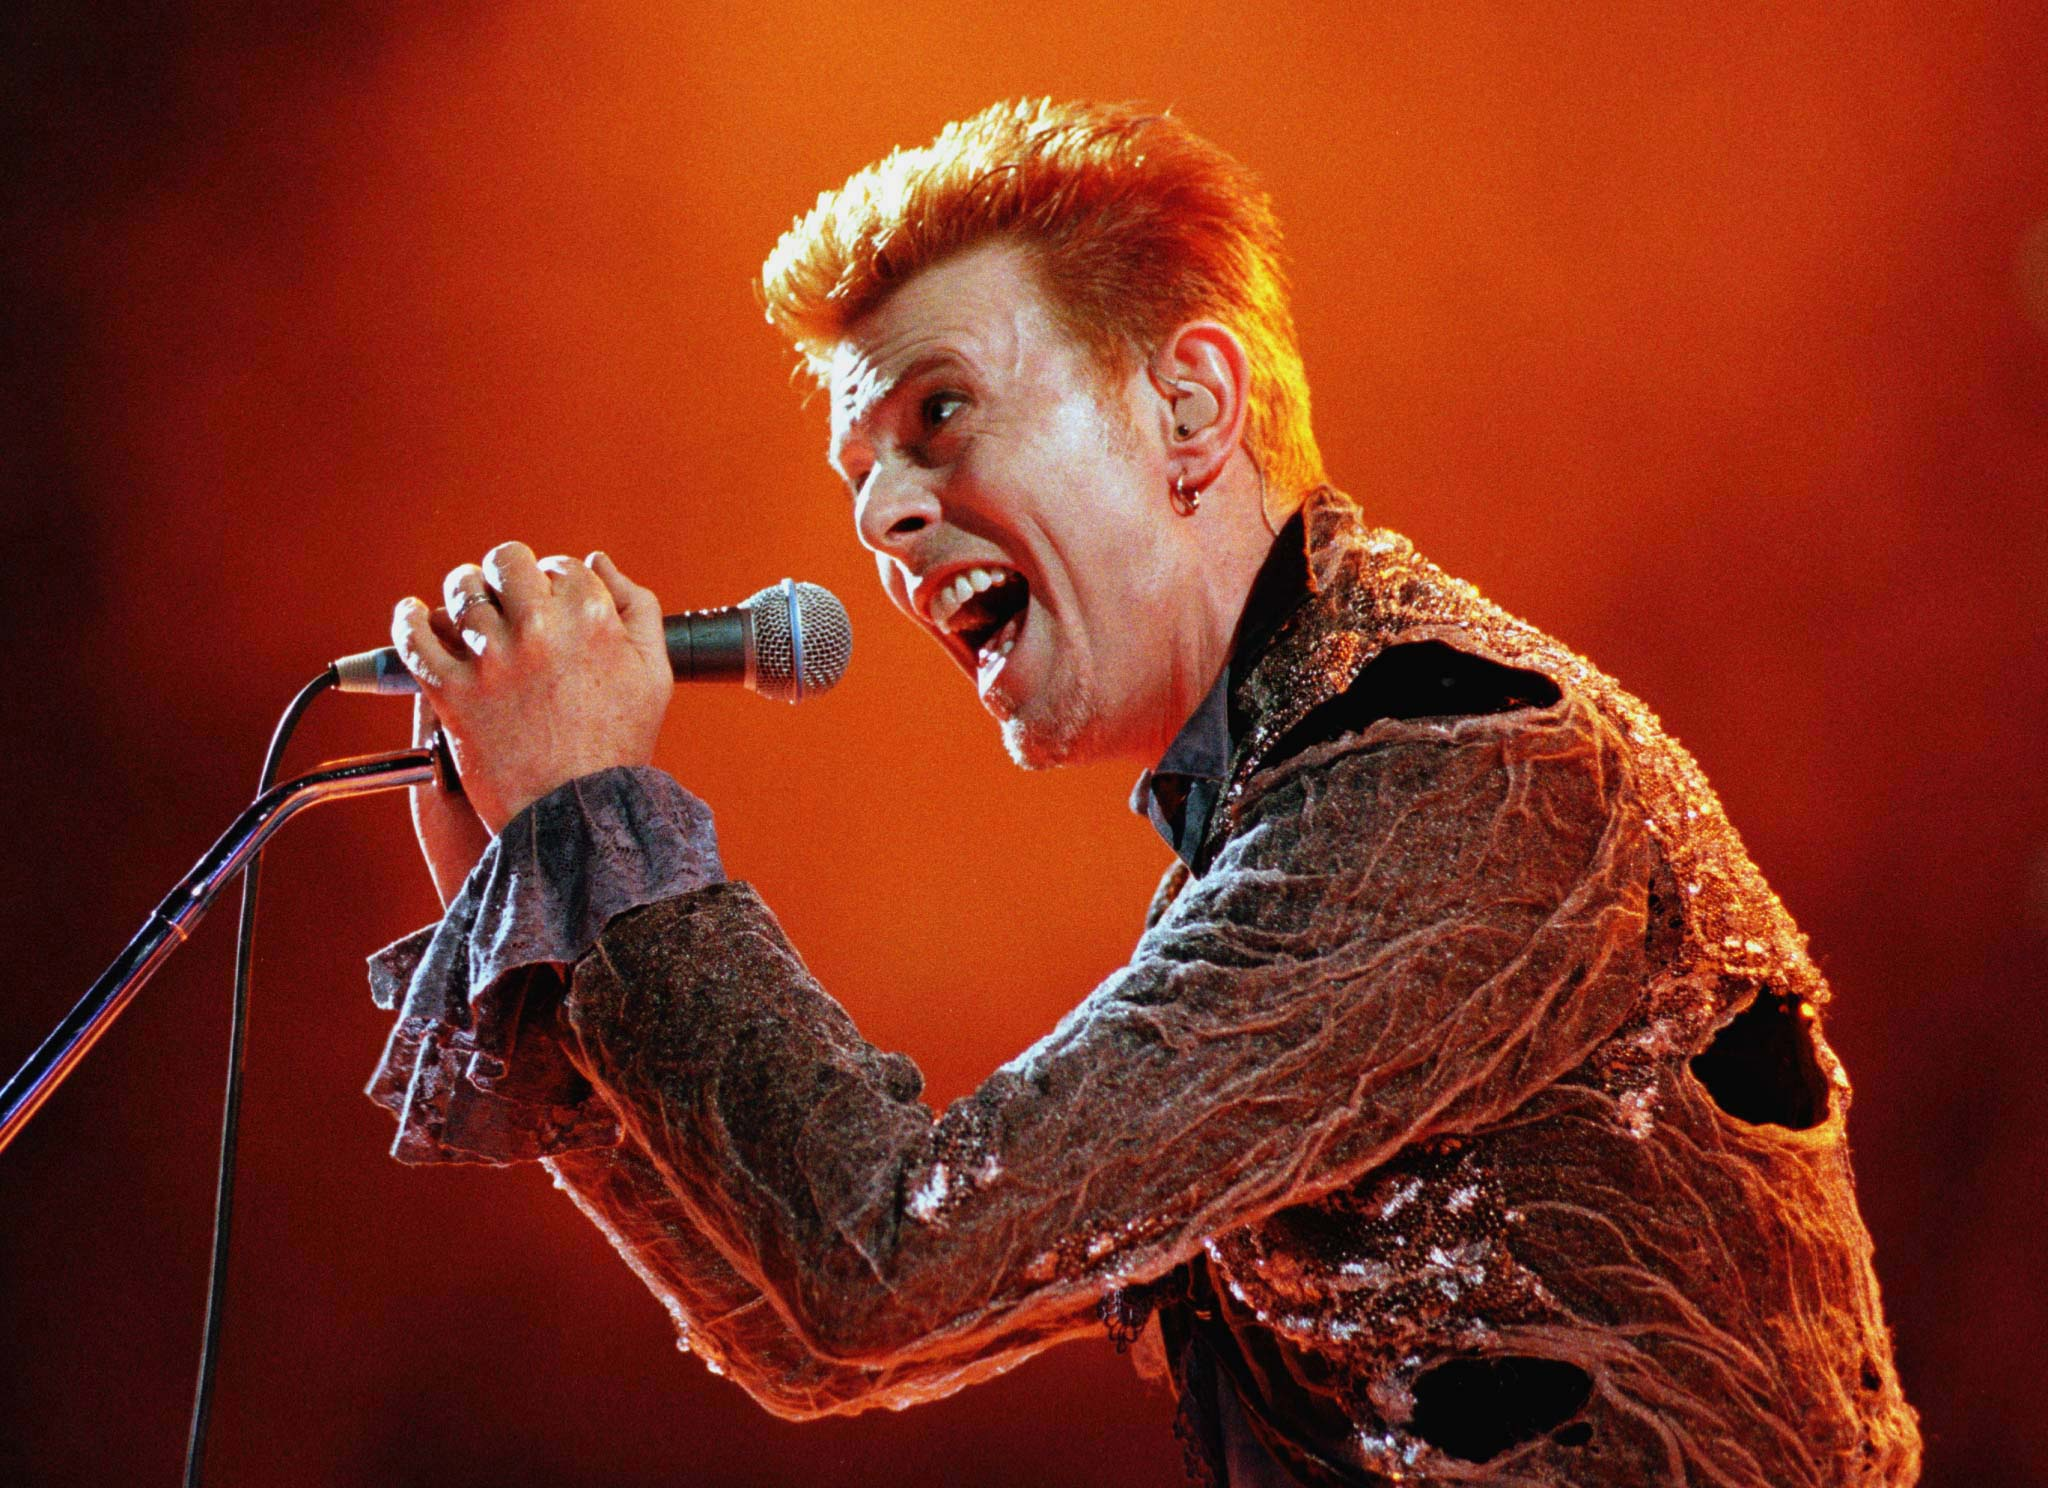 David Bowie performs at the Panathinaikos stadium in Athens during a rock festival, July 1, 1996. The two-day festival includes performances by Lou-Reed, Simply-Red, and Elvis-Costello.